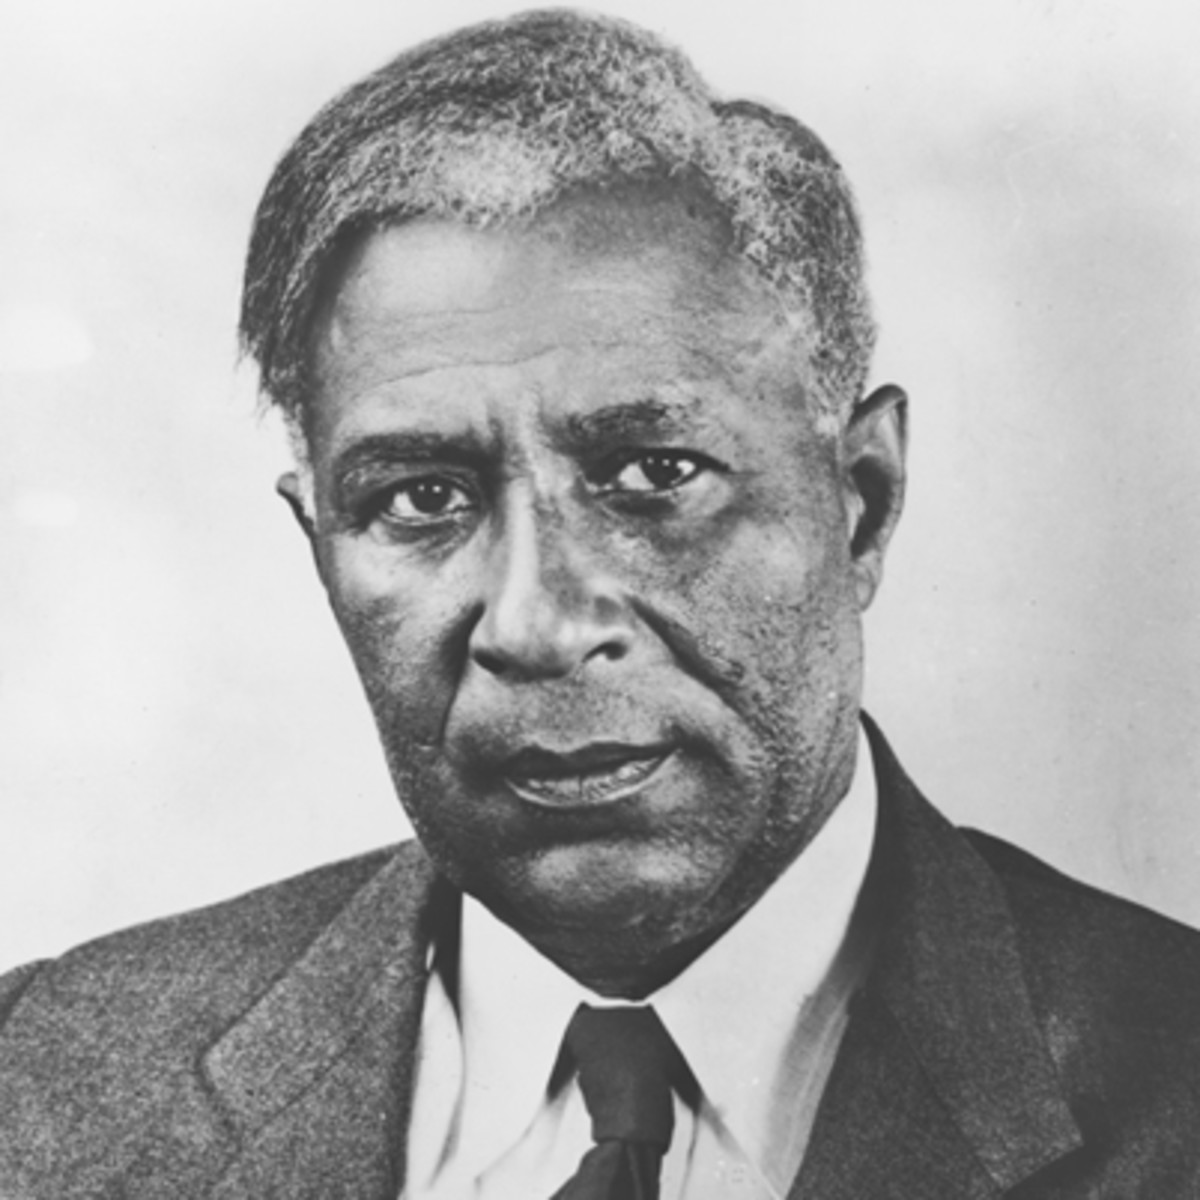 Garrett A. Morgan. The great African American inventor of life-saving breathing device (gas mask) and traffic lights.